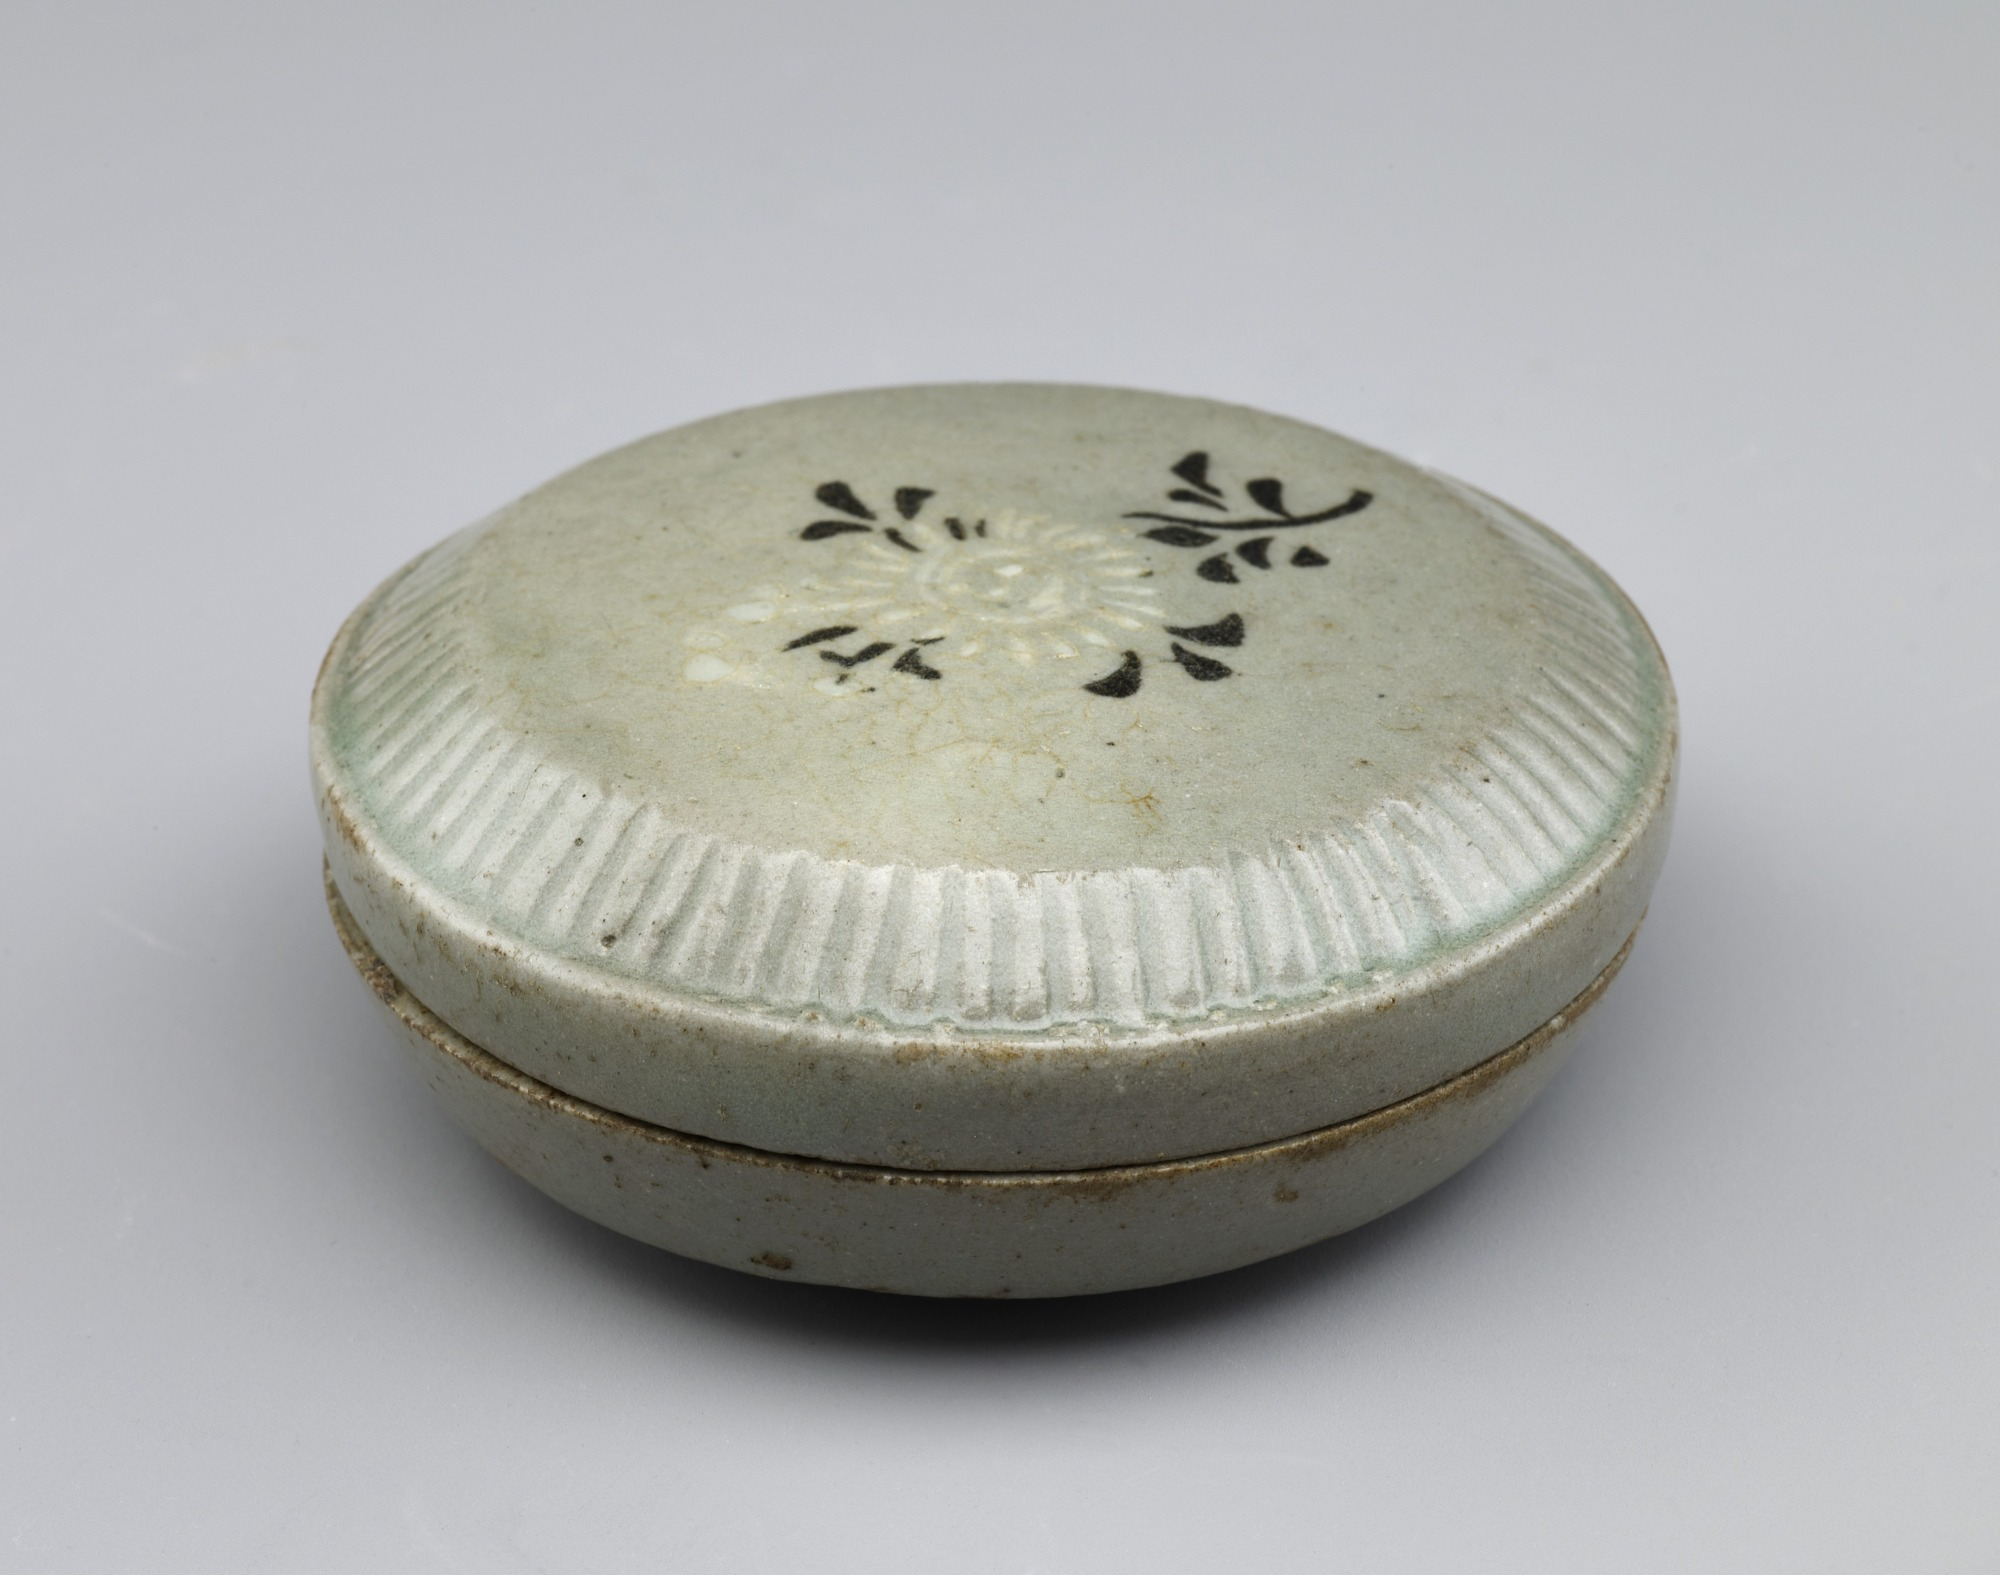 Covered box with inlaid design of chrysanthemum spray, 3/4 profile